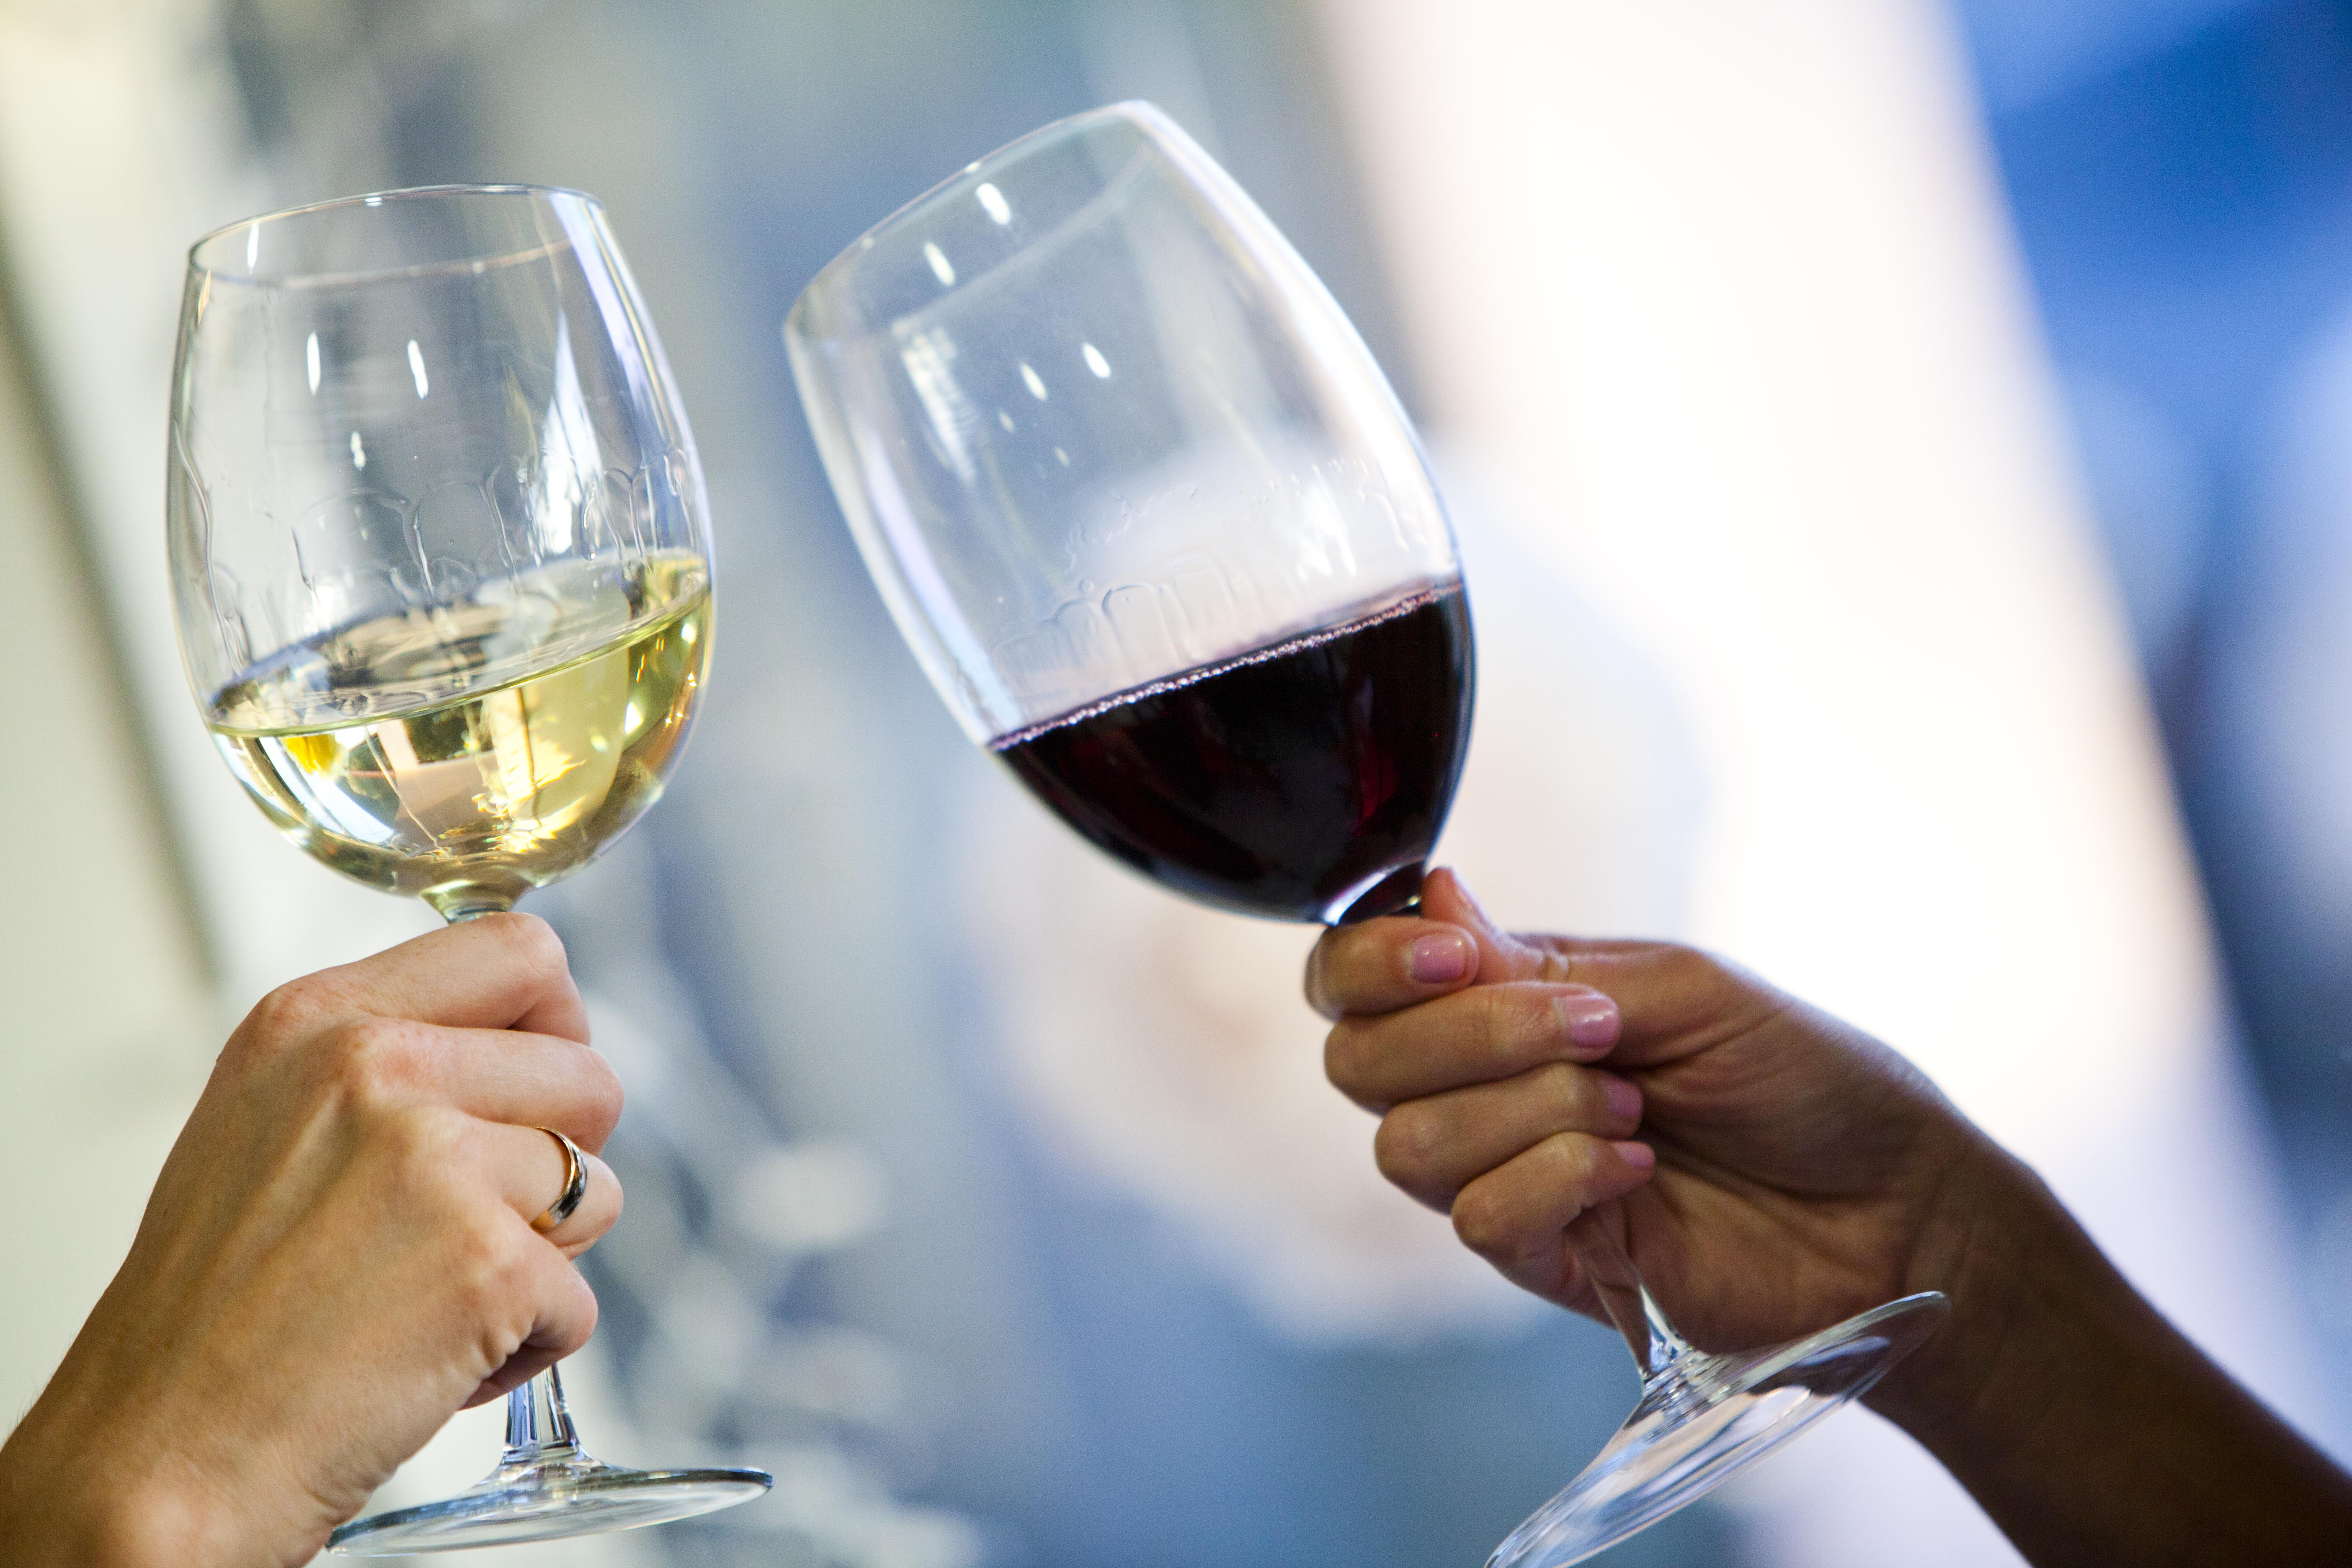 Wine wednesday wine tasting 101 look take a look at what youre about to taste the appearance and color will tell you a lot about a wine intense deep colorparticularly in a red solutioingenieria Images